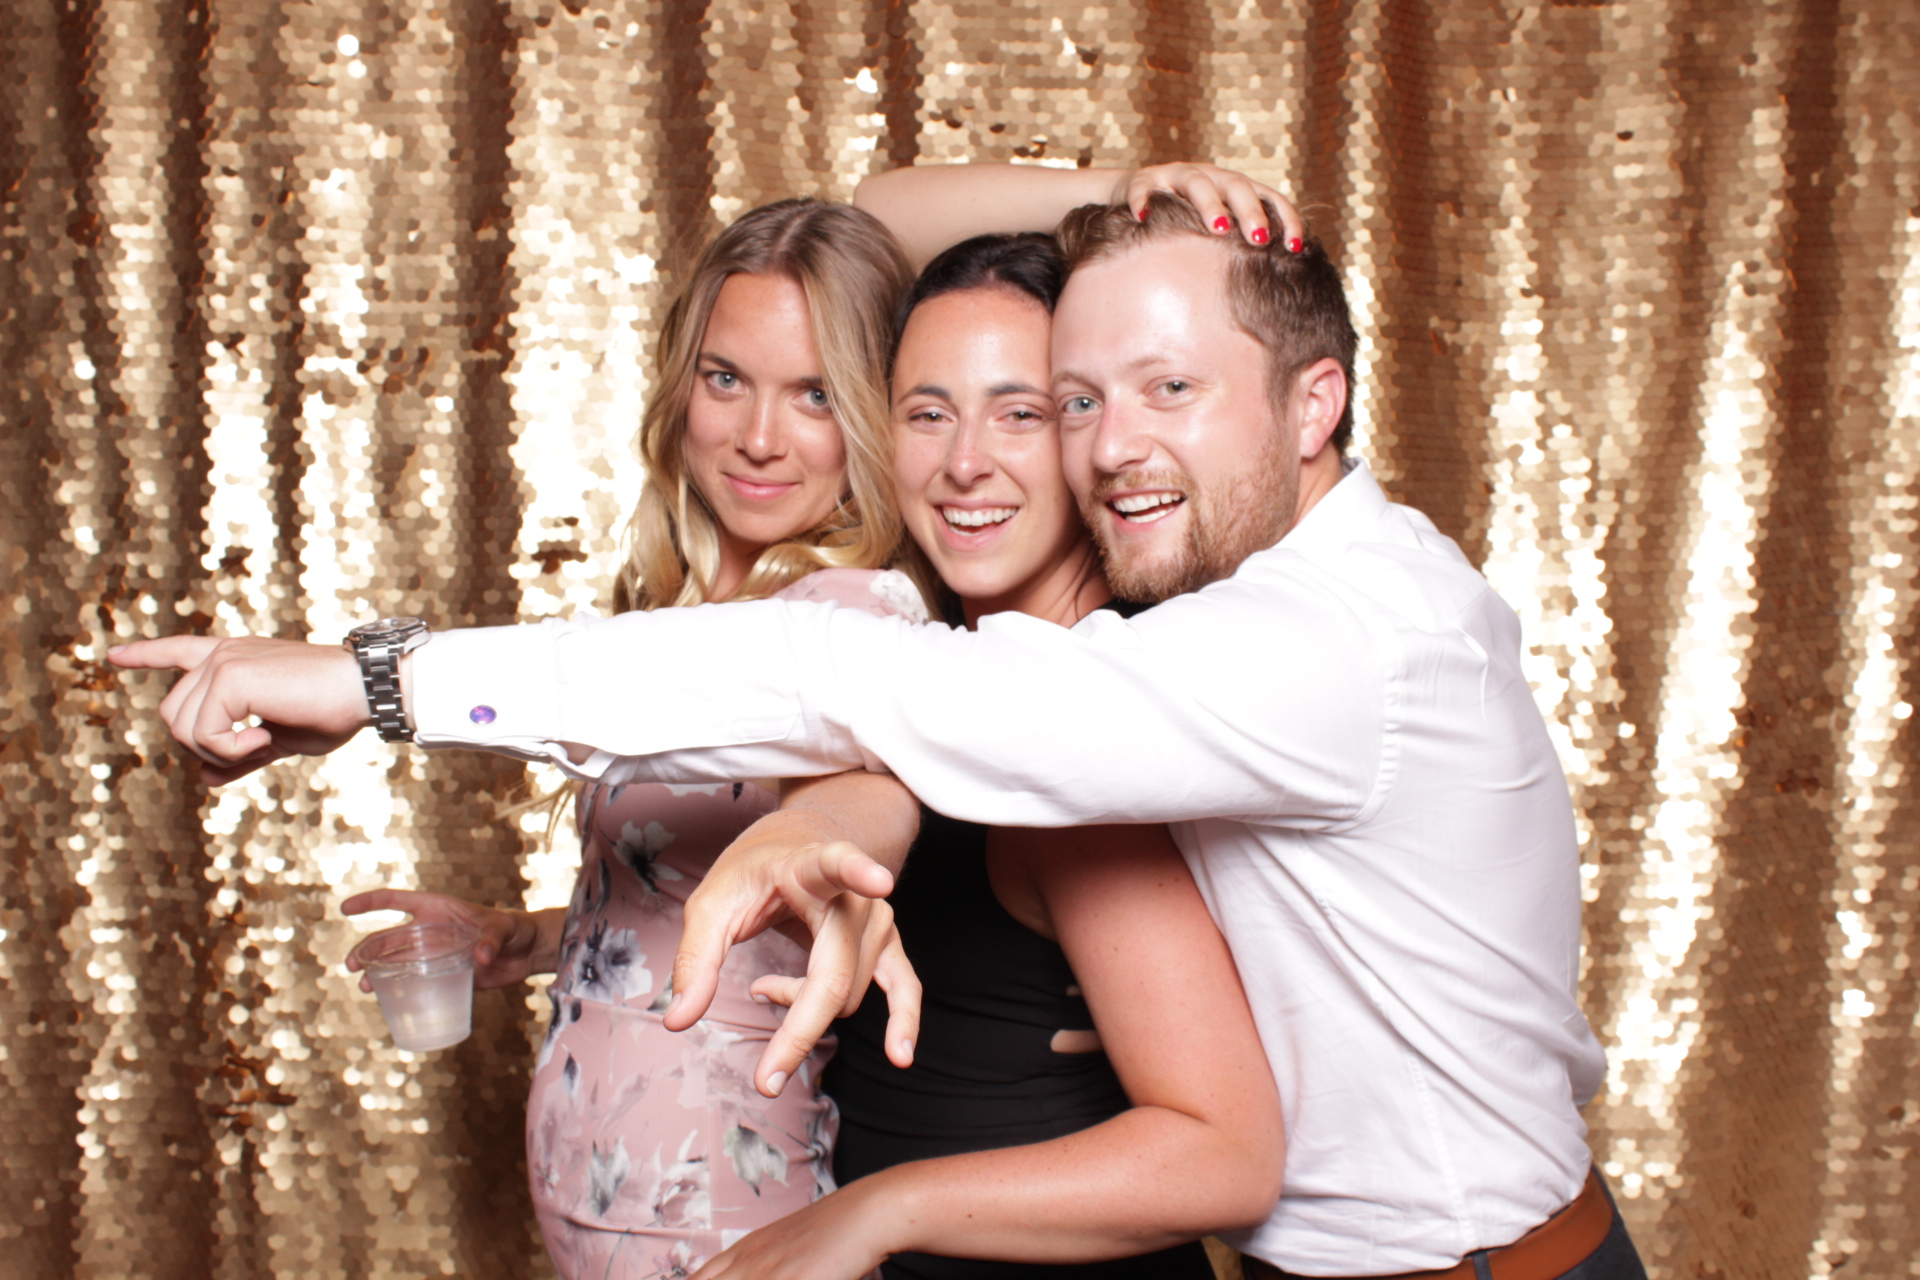 Minneapolis_St Paul_Photo_Booths_Weddings (16).jpg